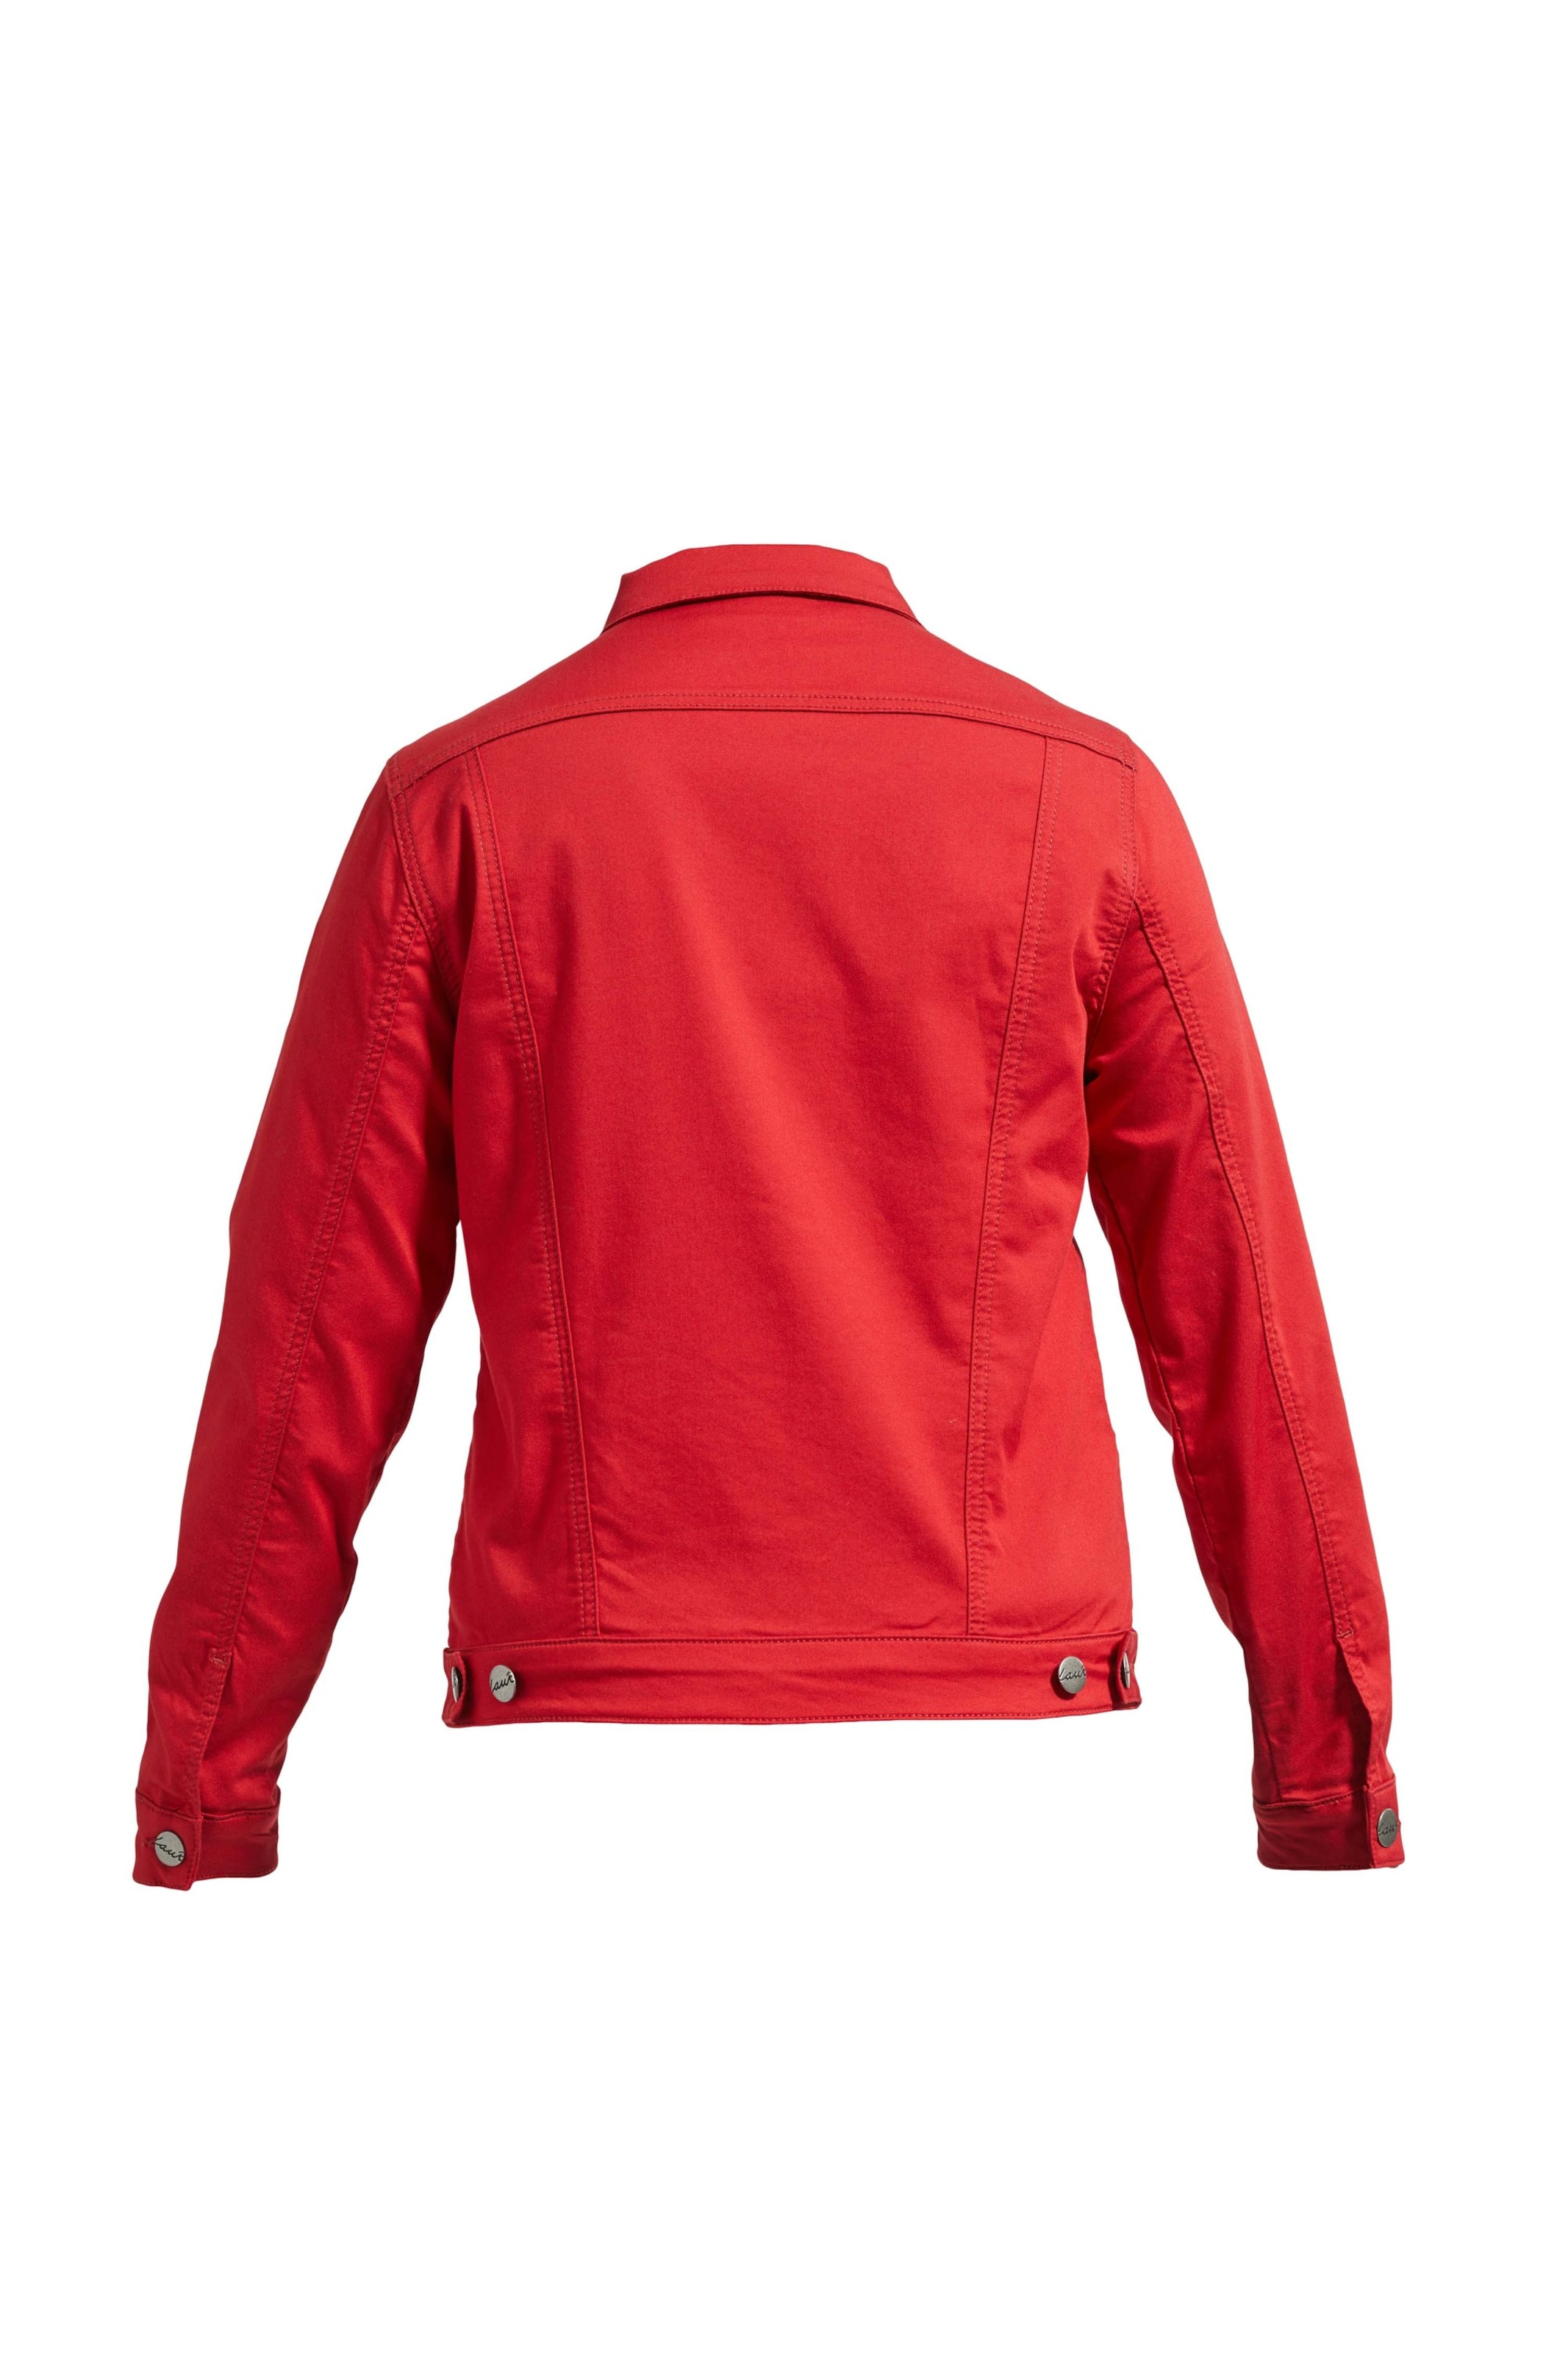 Jacke Laurie Laurie Jacke 'mary' In Rot g76Yybfv